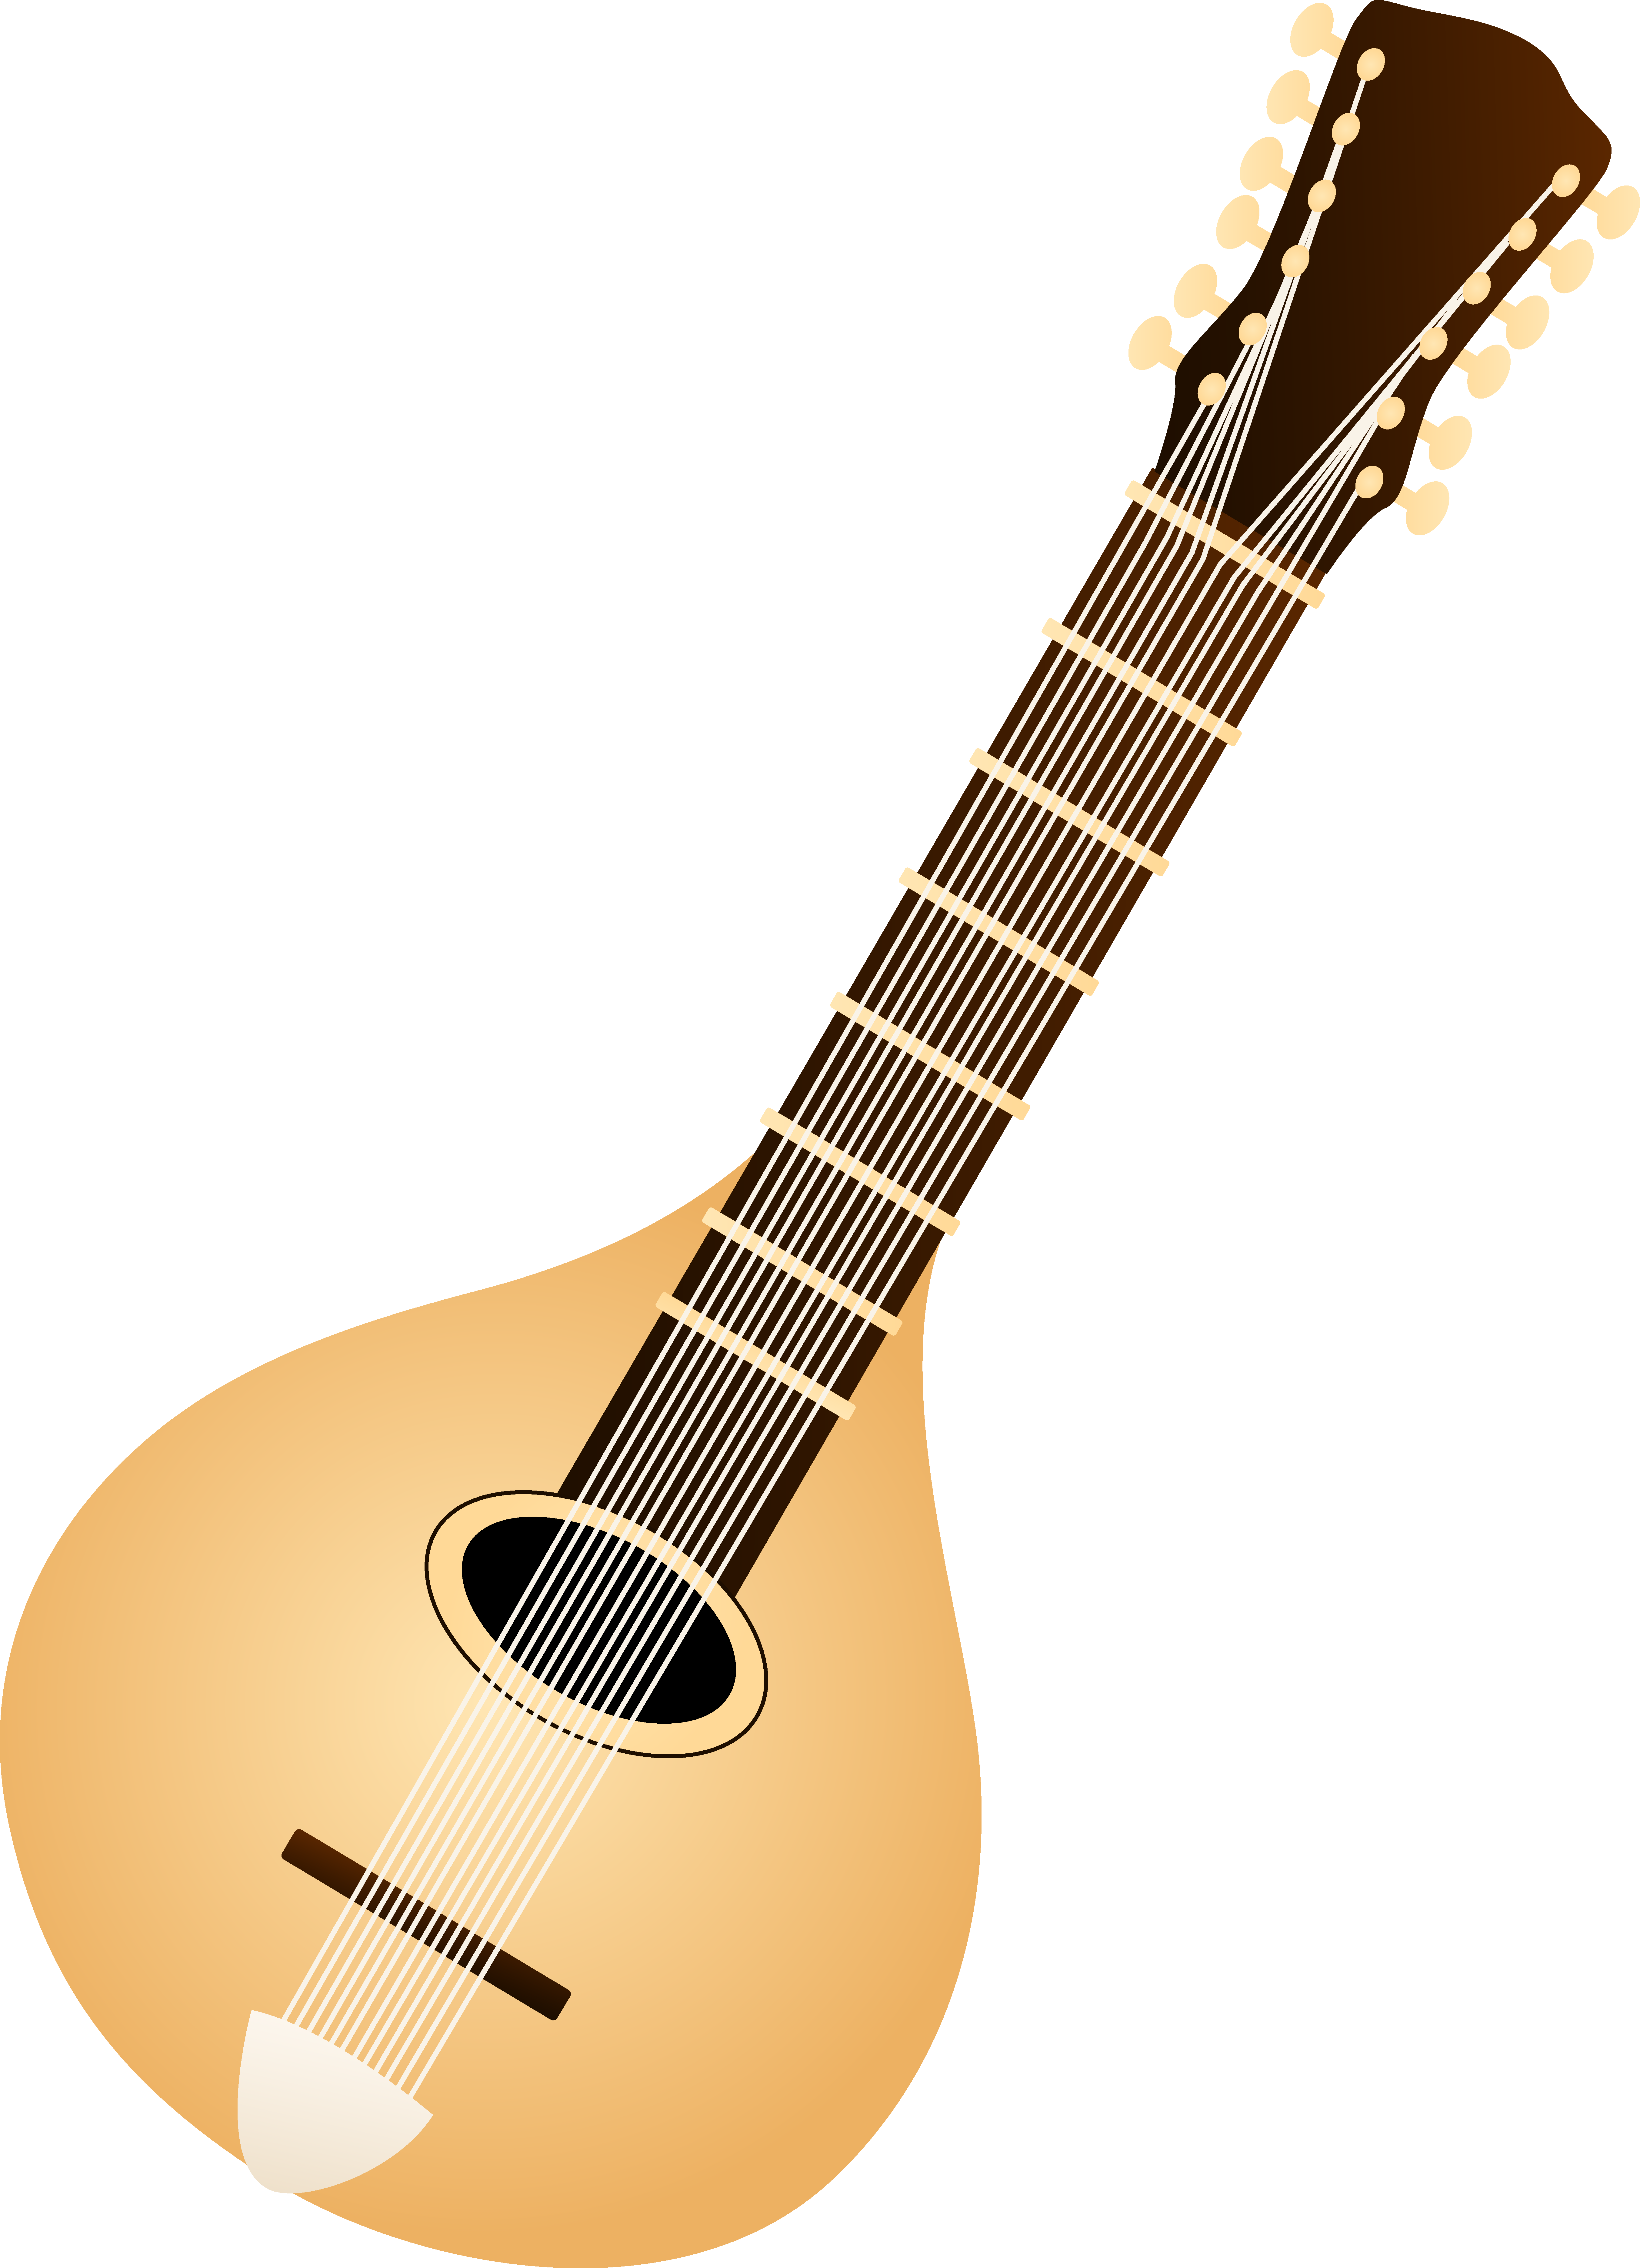 jpg download Instrument mandolin free on. Acoustic clipart guitar spain